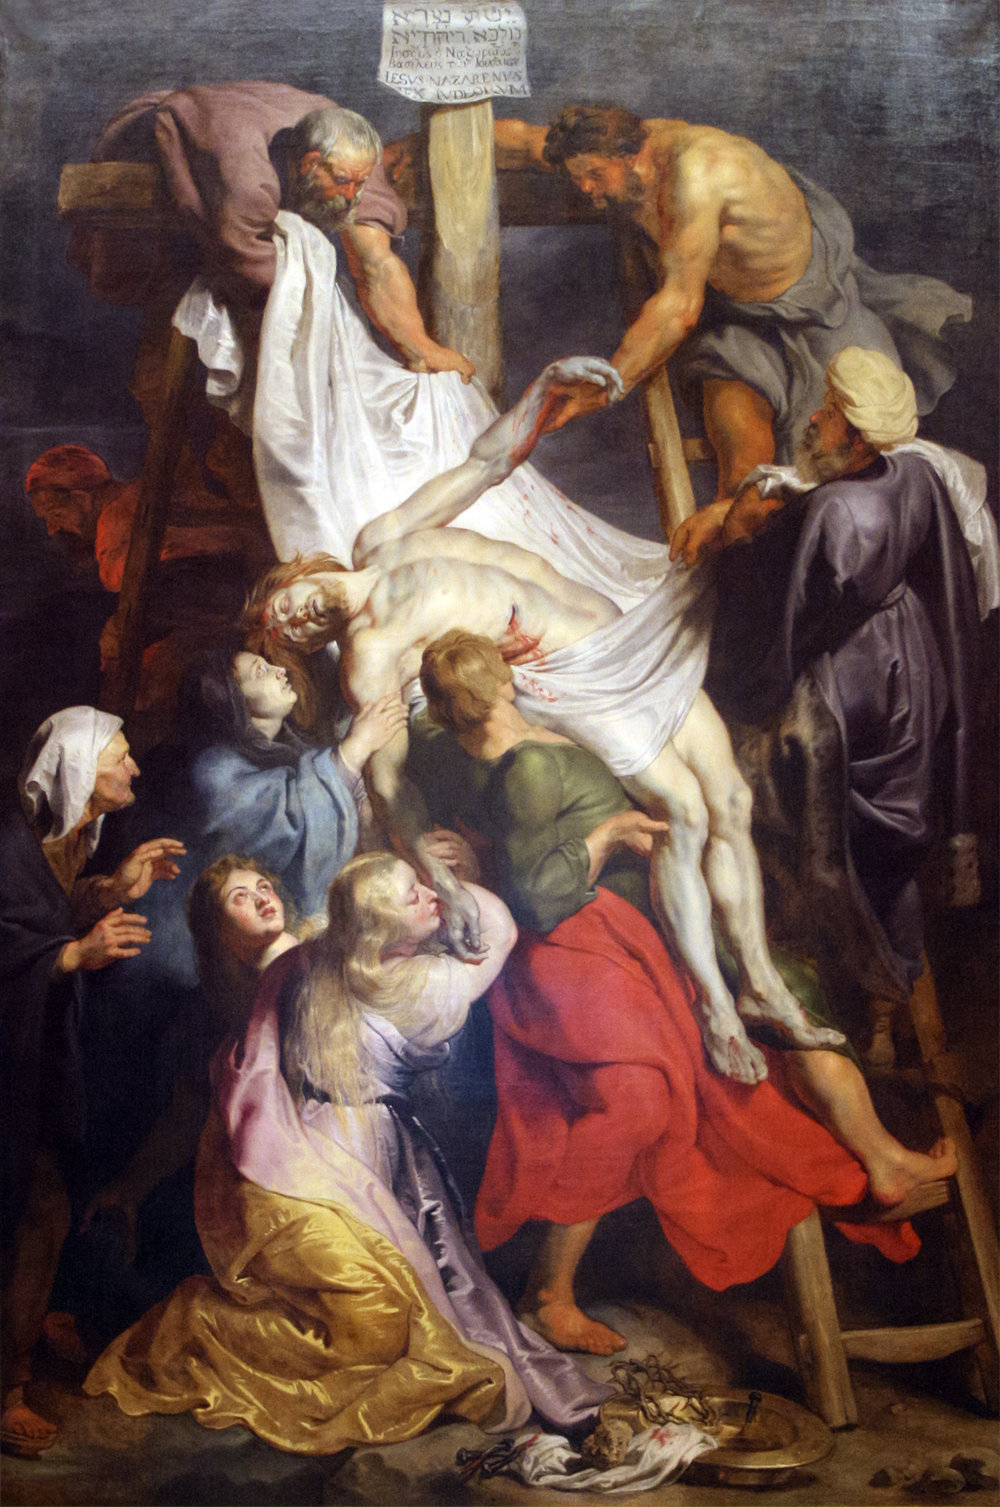 Descent from the Cross,by Peter Paul Rubens, 1617.  Public Domain, https://commons.wikimedia.org/w/index.php?curid=1878967